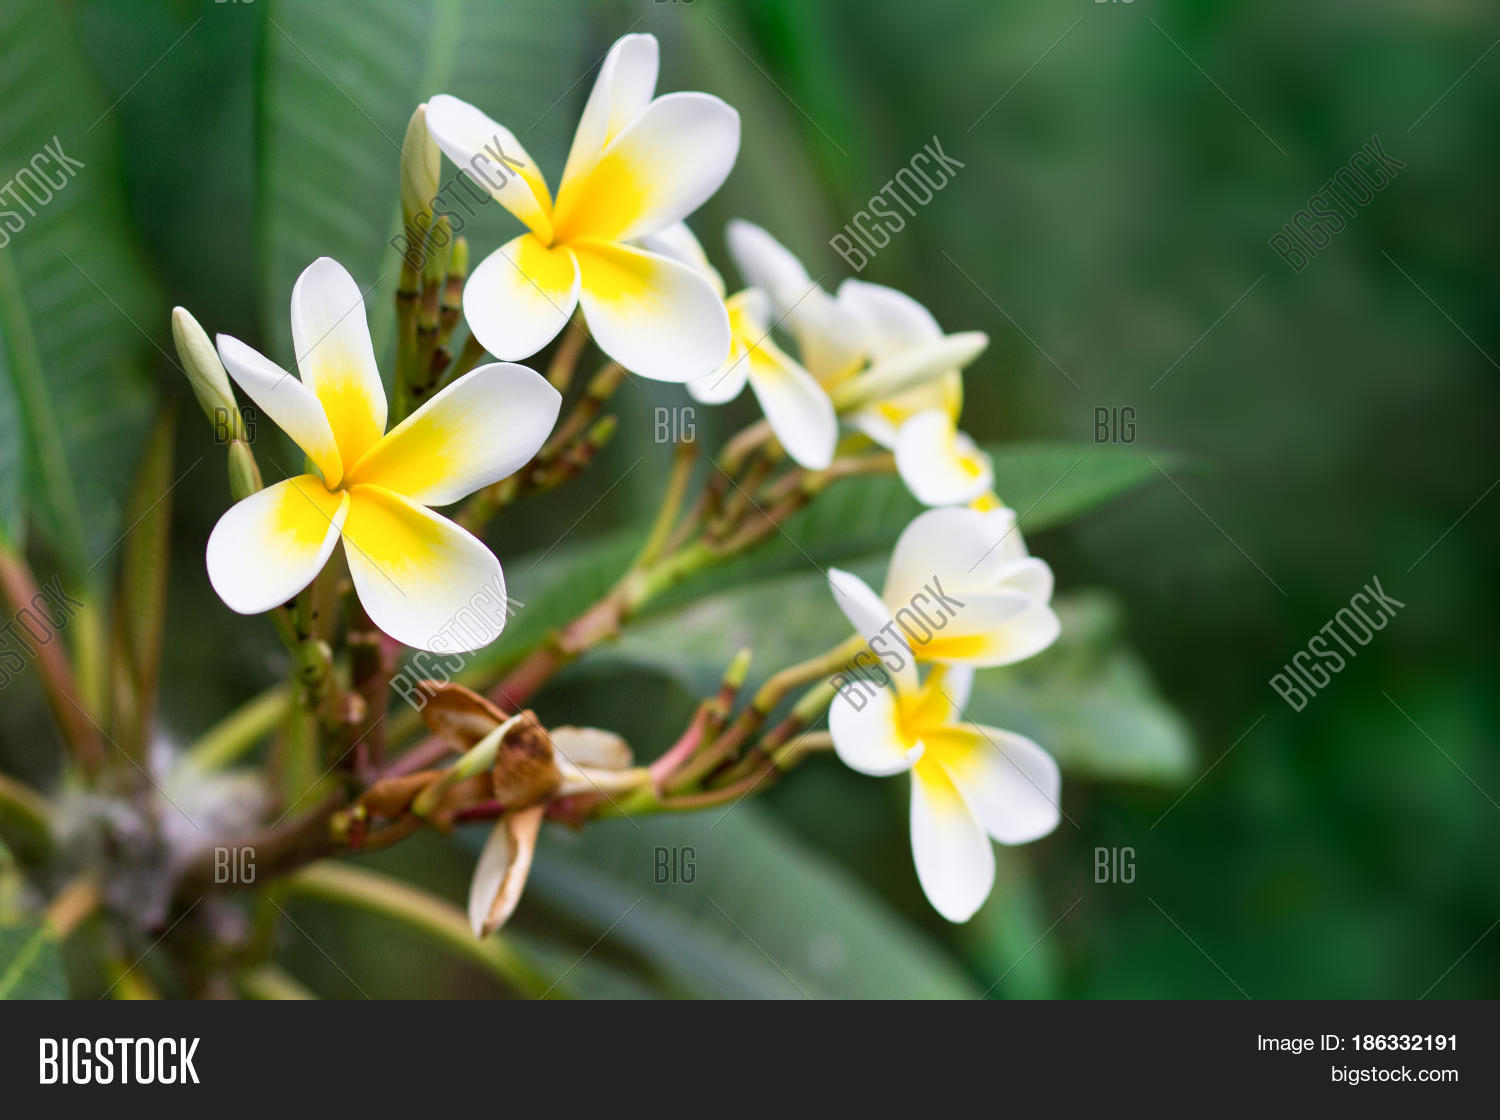 Blossoming Mango Tree Image Photo Free Trial Bigstock